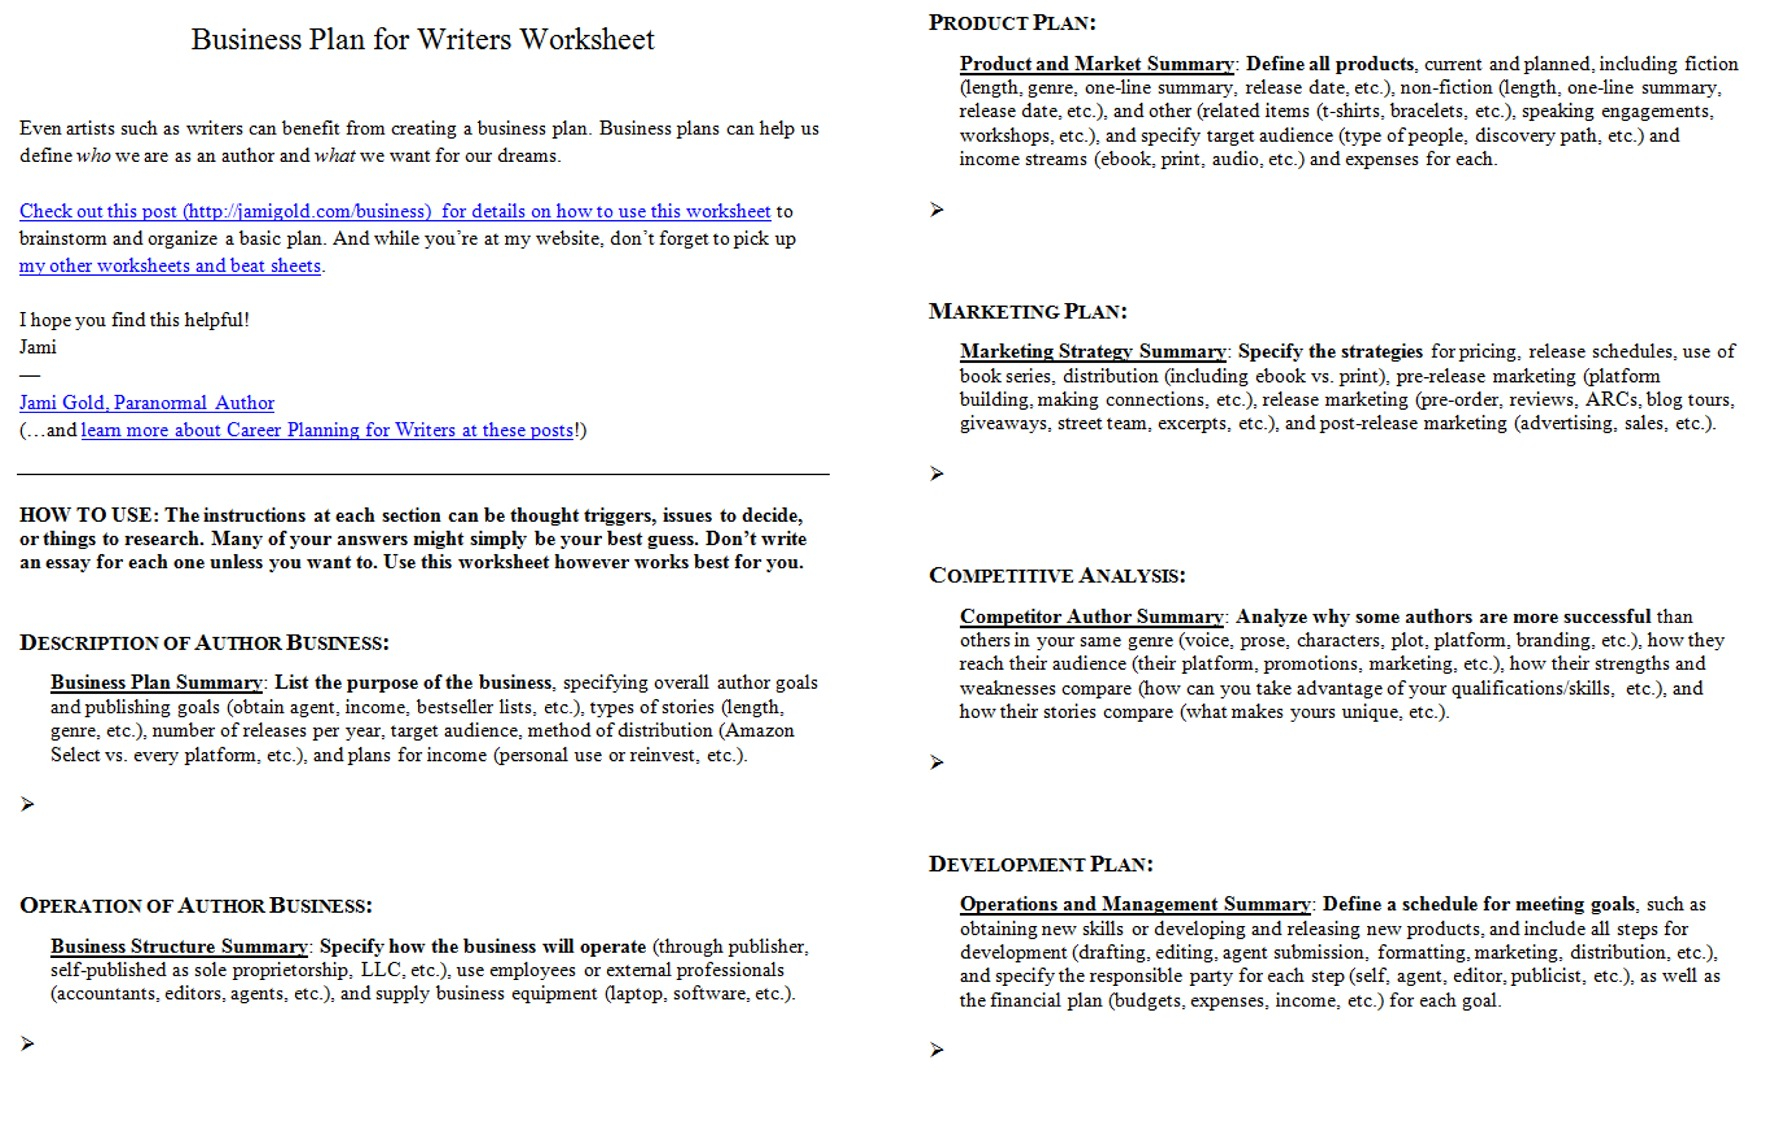 Weirdmailus  Ravishing Worksheets For Writers  Jami Gold Paranormal Author With Engaging Screen Shot Of Both Pages Of The Business Plan For Writers Worksheet With Awesome Numbers  Worksheet Also Finding Adjectives Worksheet In Addition Adjectives Describing Words Worksheet And Direct Object And Indirect Object Worksheets As Well As Number  Printable Worksheets Additionally Fractions Worksheet Grade  From Jamigoldcom With Weirdmailus  Engaging Worksheets For Writers  Jami Gold Paranormal Author With Awesome Screen Shot Of Both Pages Of The Business Plan For Writers Worksheet And Ravishing Numbers  Worksheet Also Finding Adjectives Worksheet In Addition Adjectives Describing Words Worksheet From Jamigoldcom